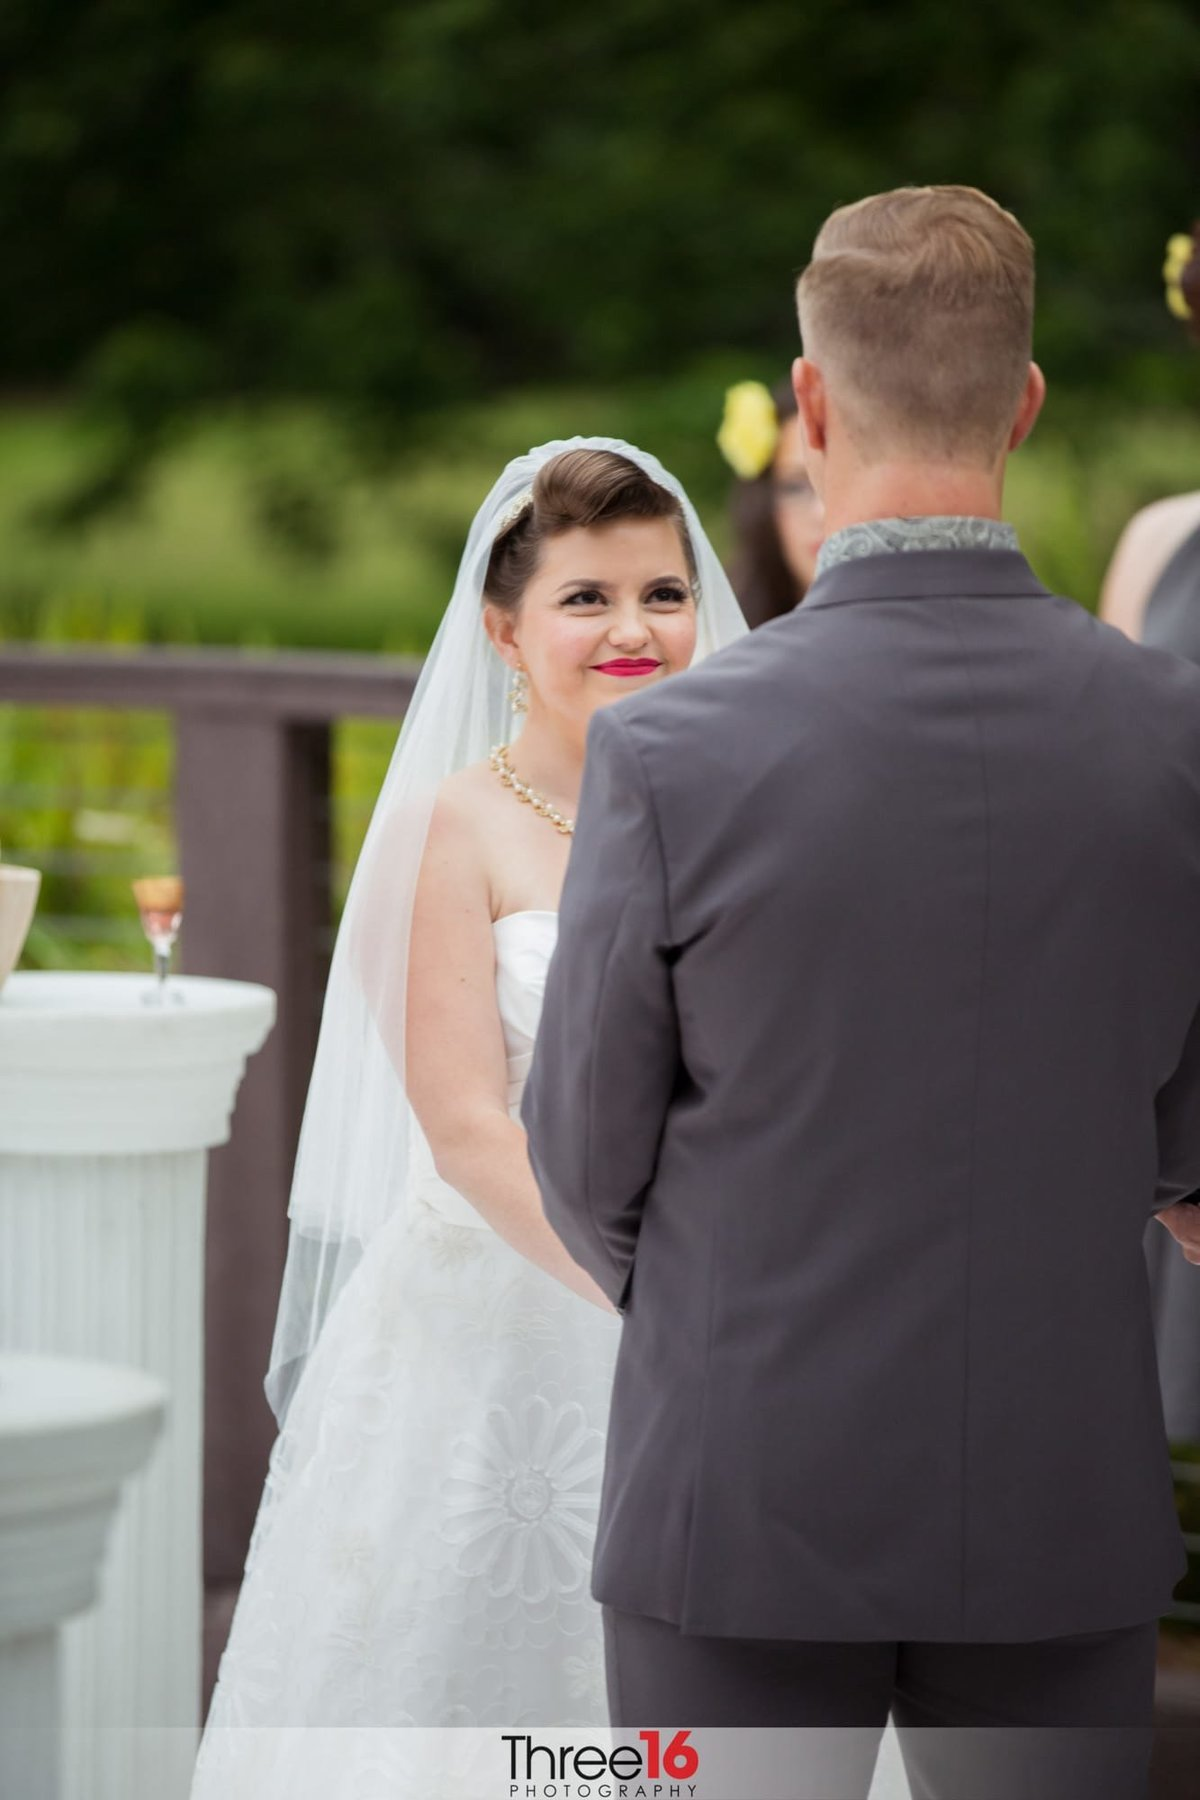 Bride stares at her Groom during the wedding ceremony